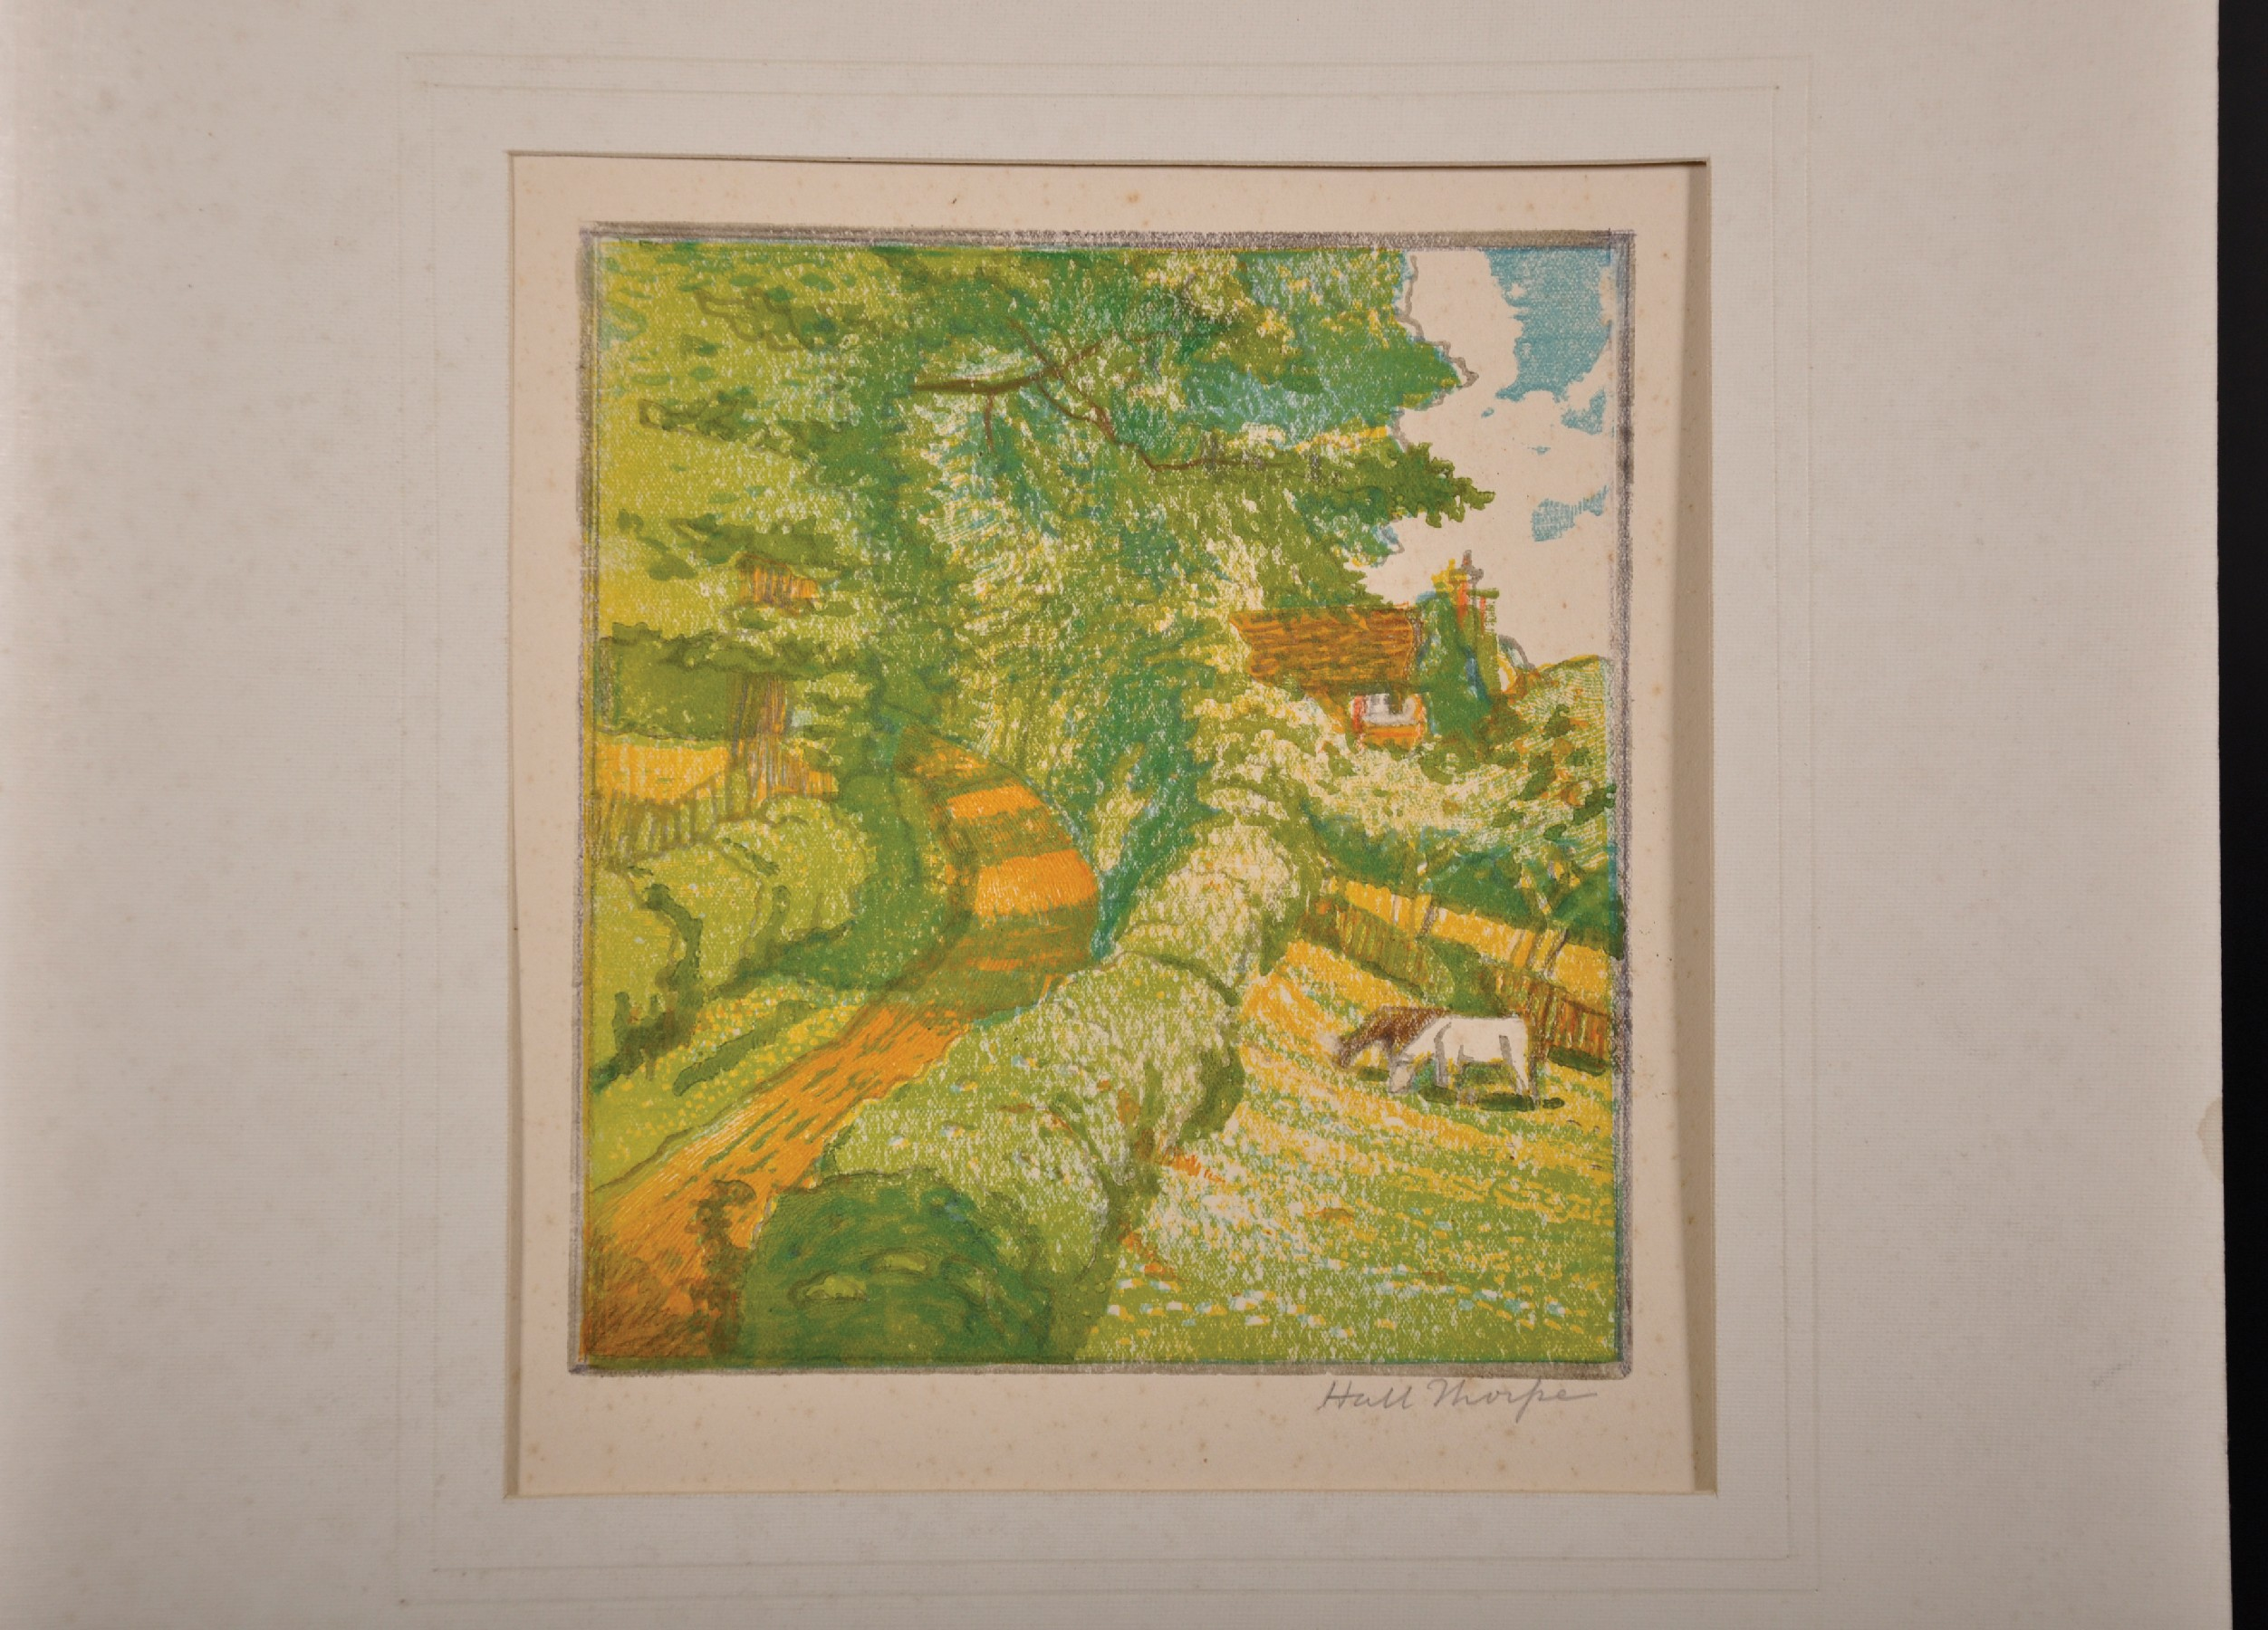 John Hall Thorpe (1874-1947) British. Cows in a Meadow by a Village Road, Woodcut in Colours, Signed - Image 2 of 3